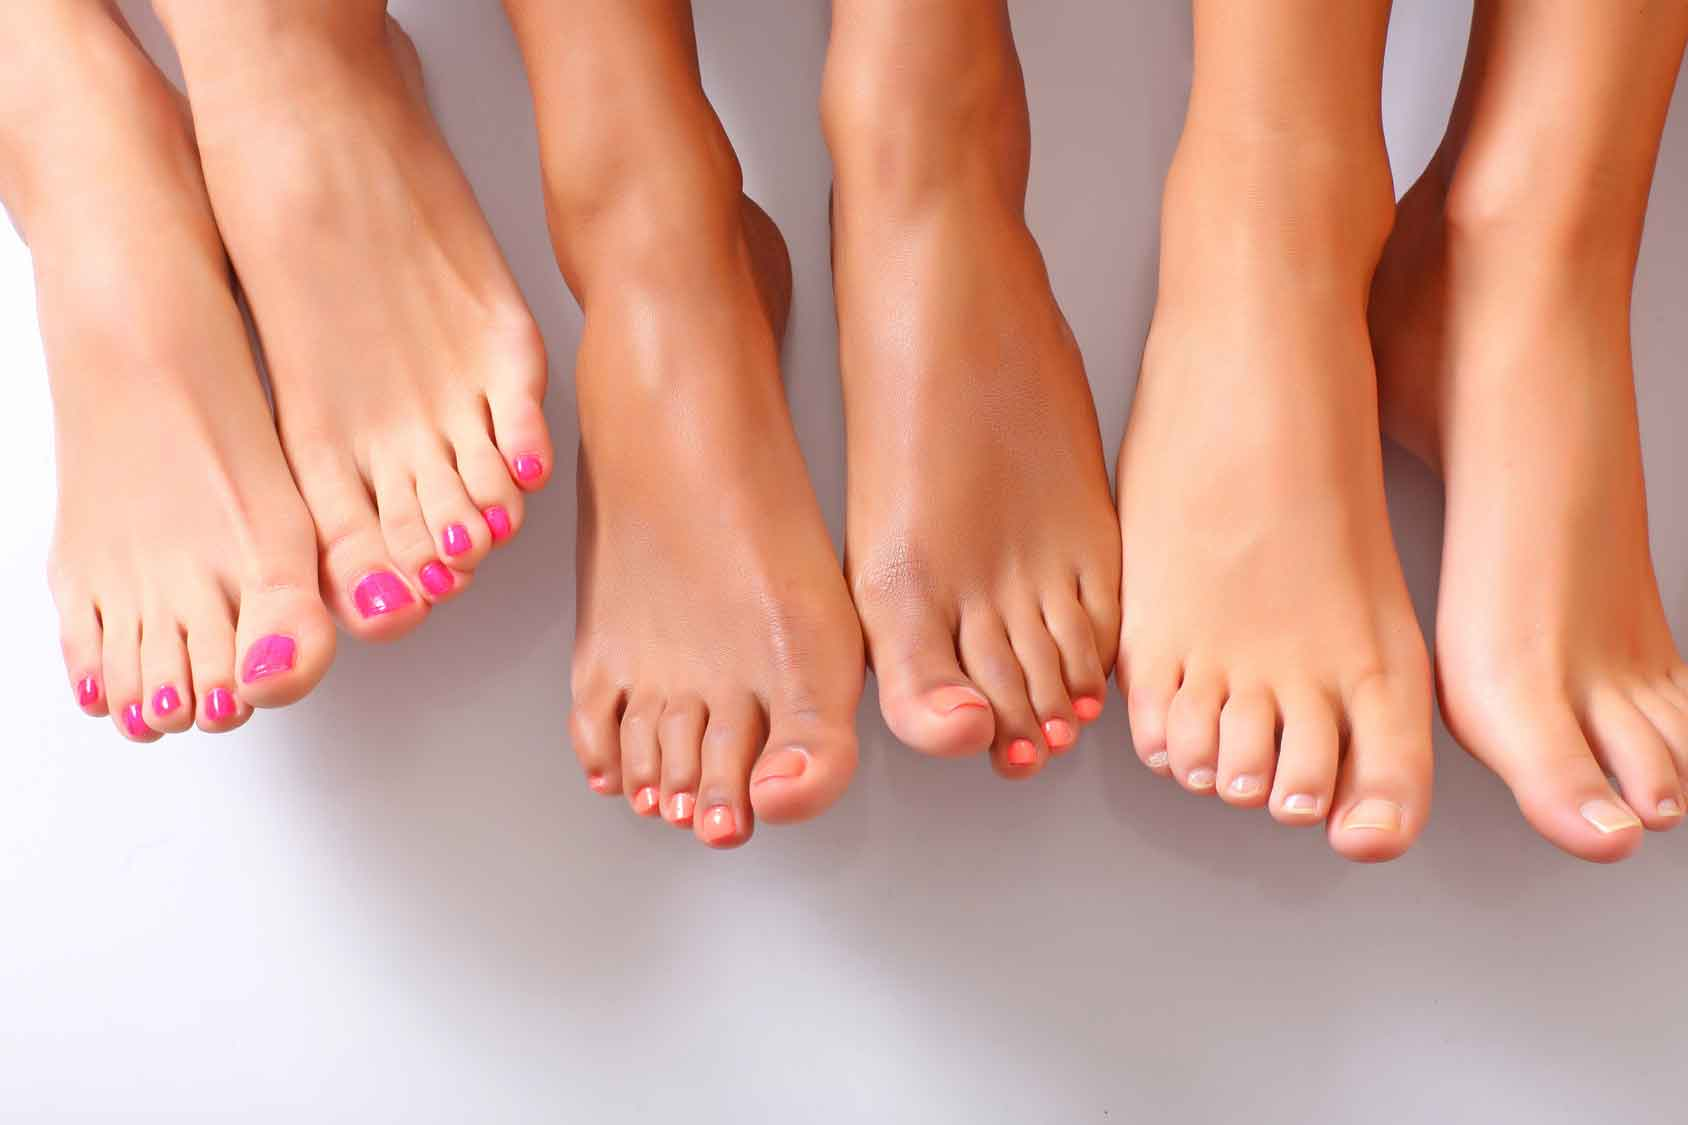 Nail-fungus-treatment-three-women-bare-foots